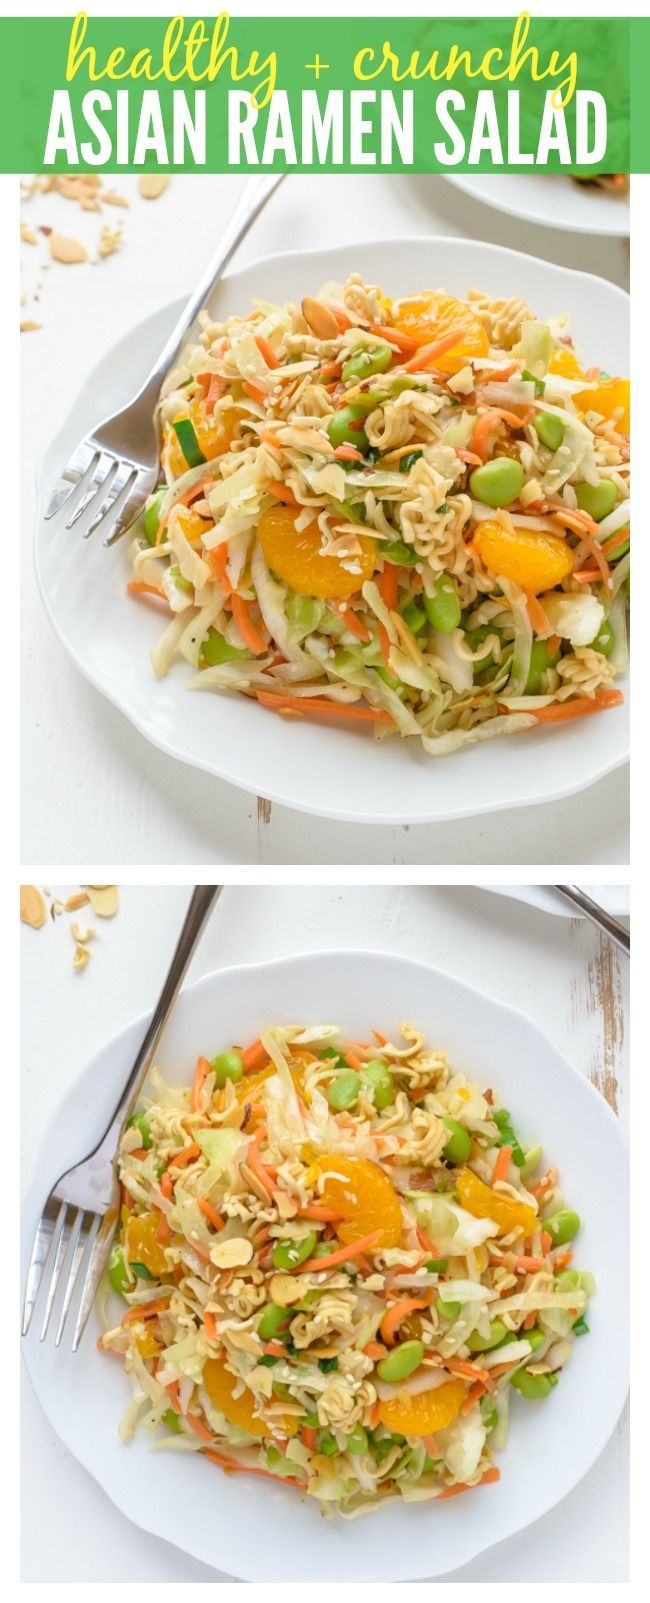 A healthy version of the classic Crunchy Asian Ramen Salad that's as good as the original but made from better ingredients!